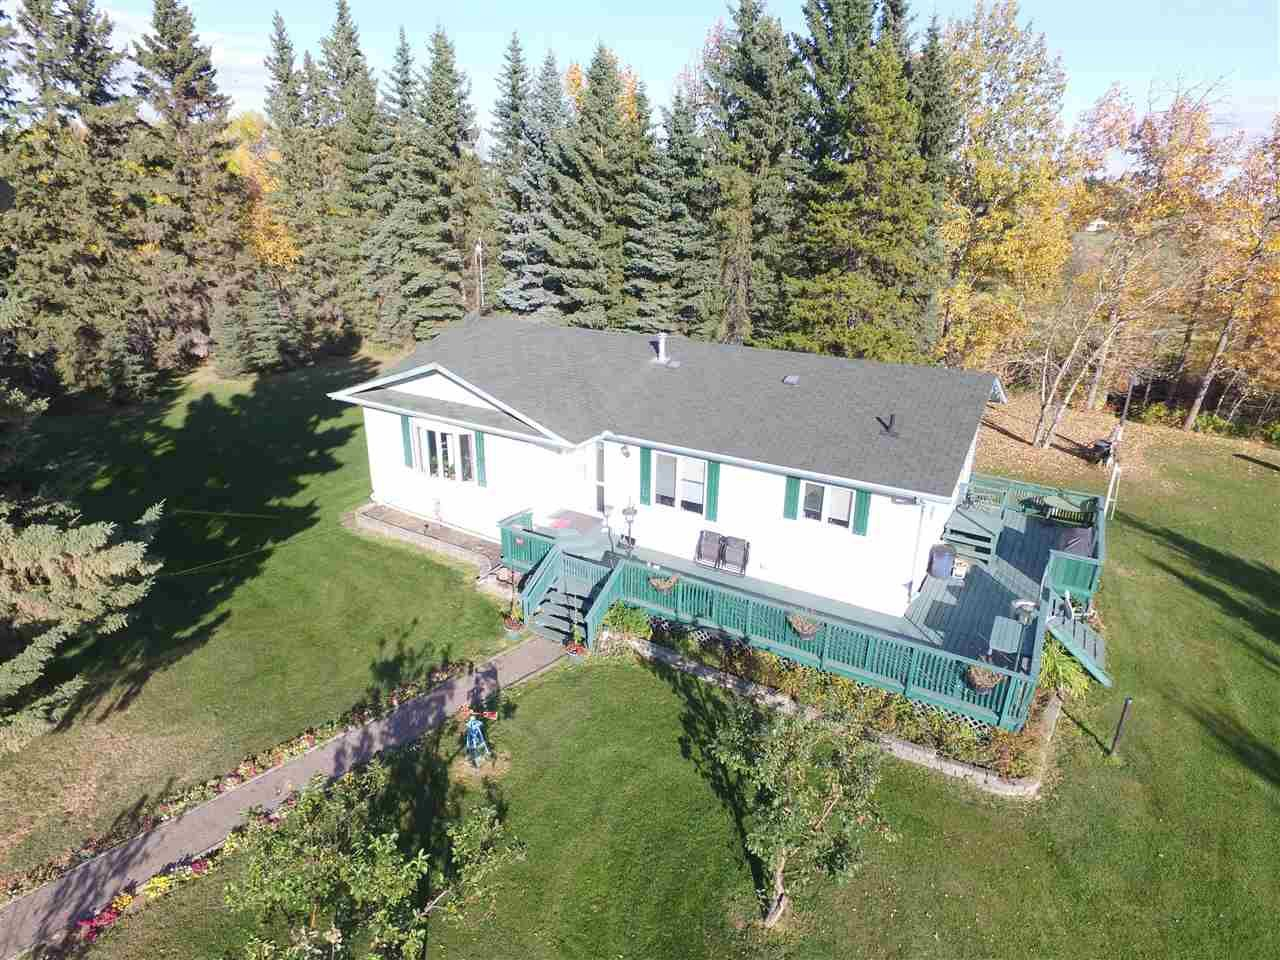 Photo 29: Photos: 265073 Twp Rd 472A: Rural Wetaskiwin County House for sale : MLS®# E4216435